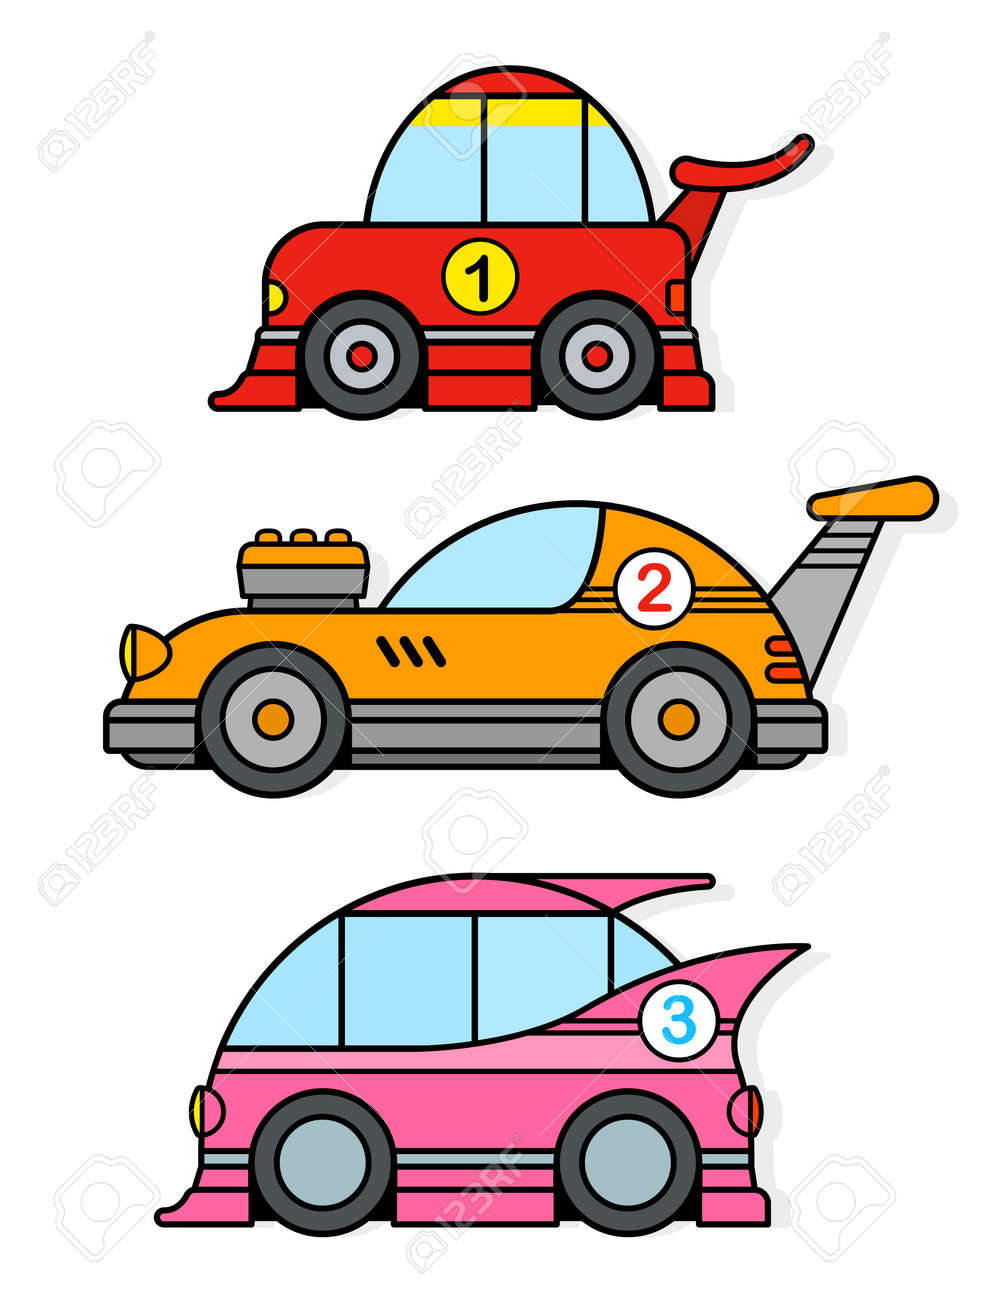 Three Different Colorful Cartoon Racing Toy Cars In Red Yellow